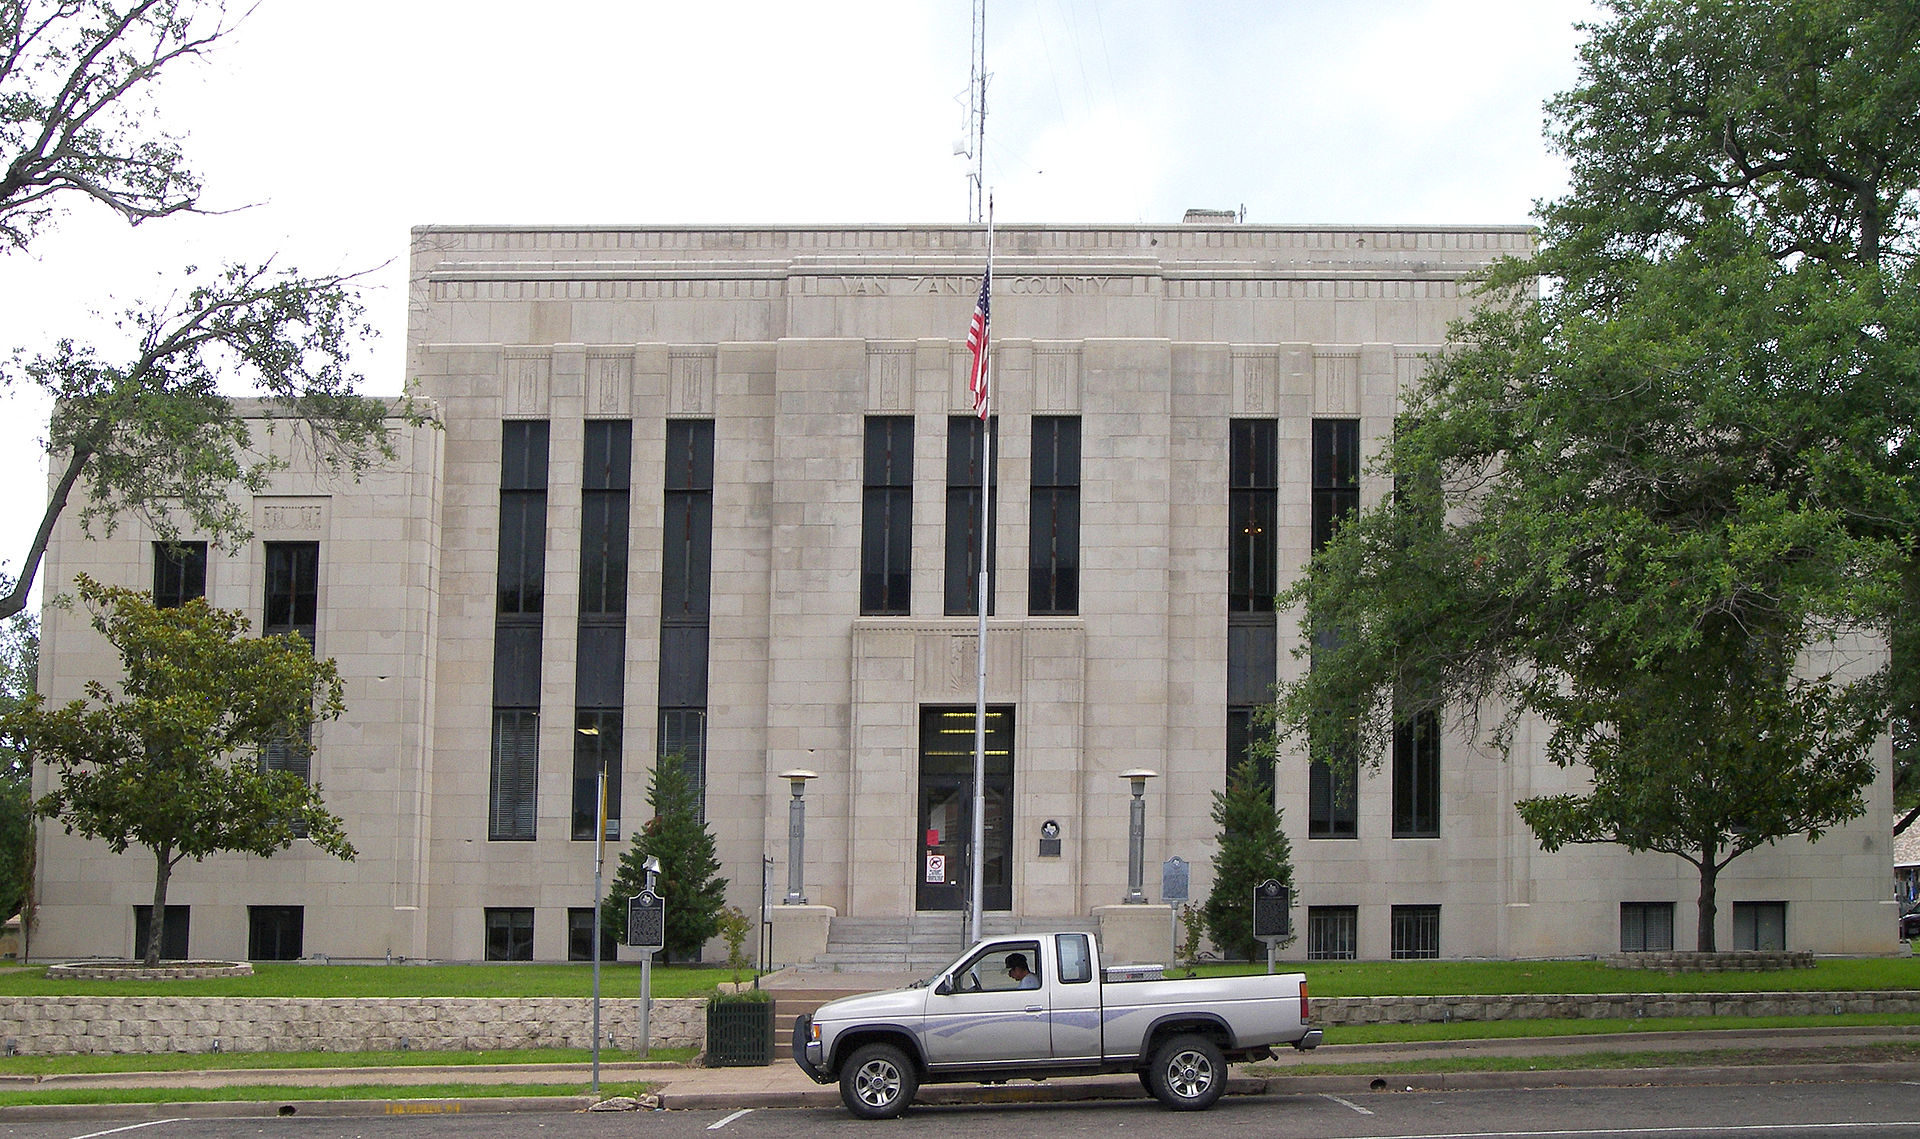 Van Zandt County Courthouse located in Canton, TX